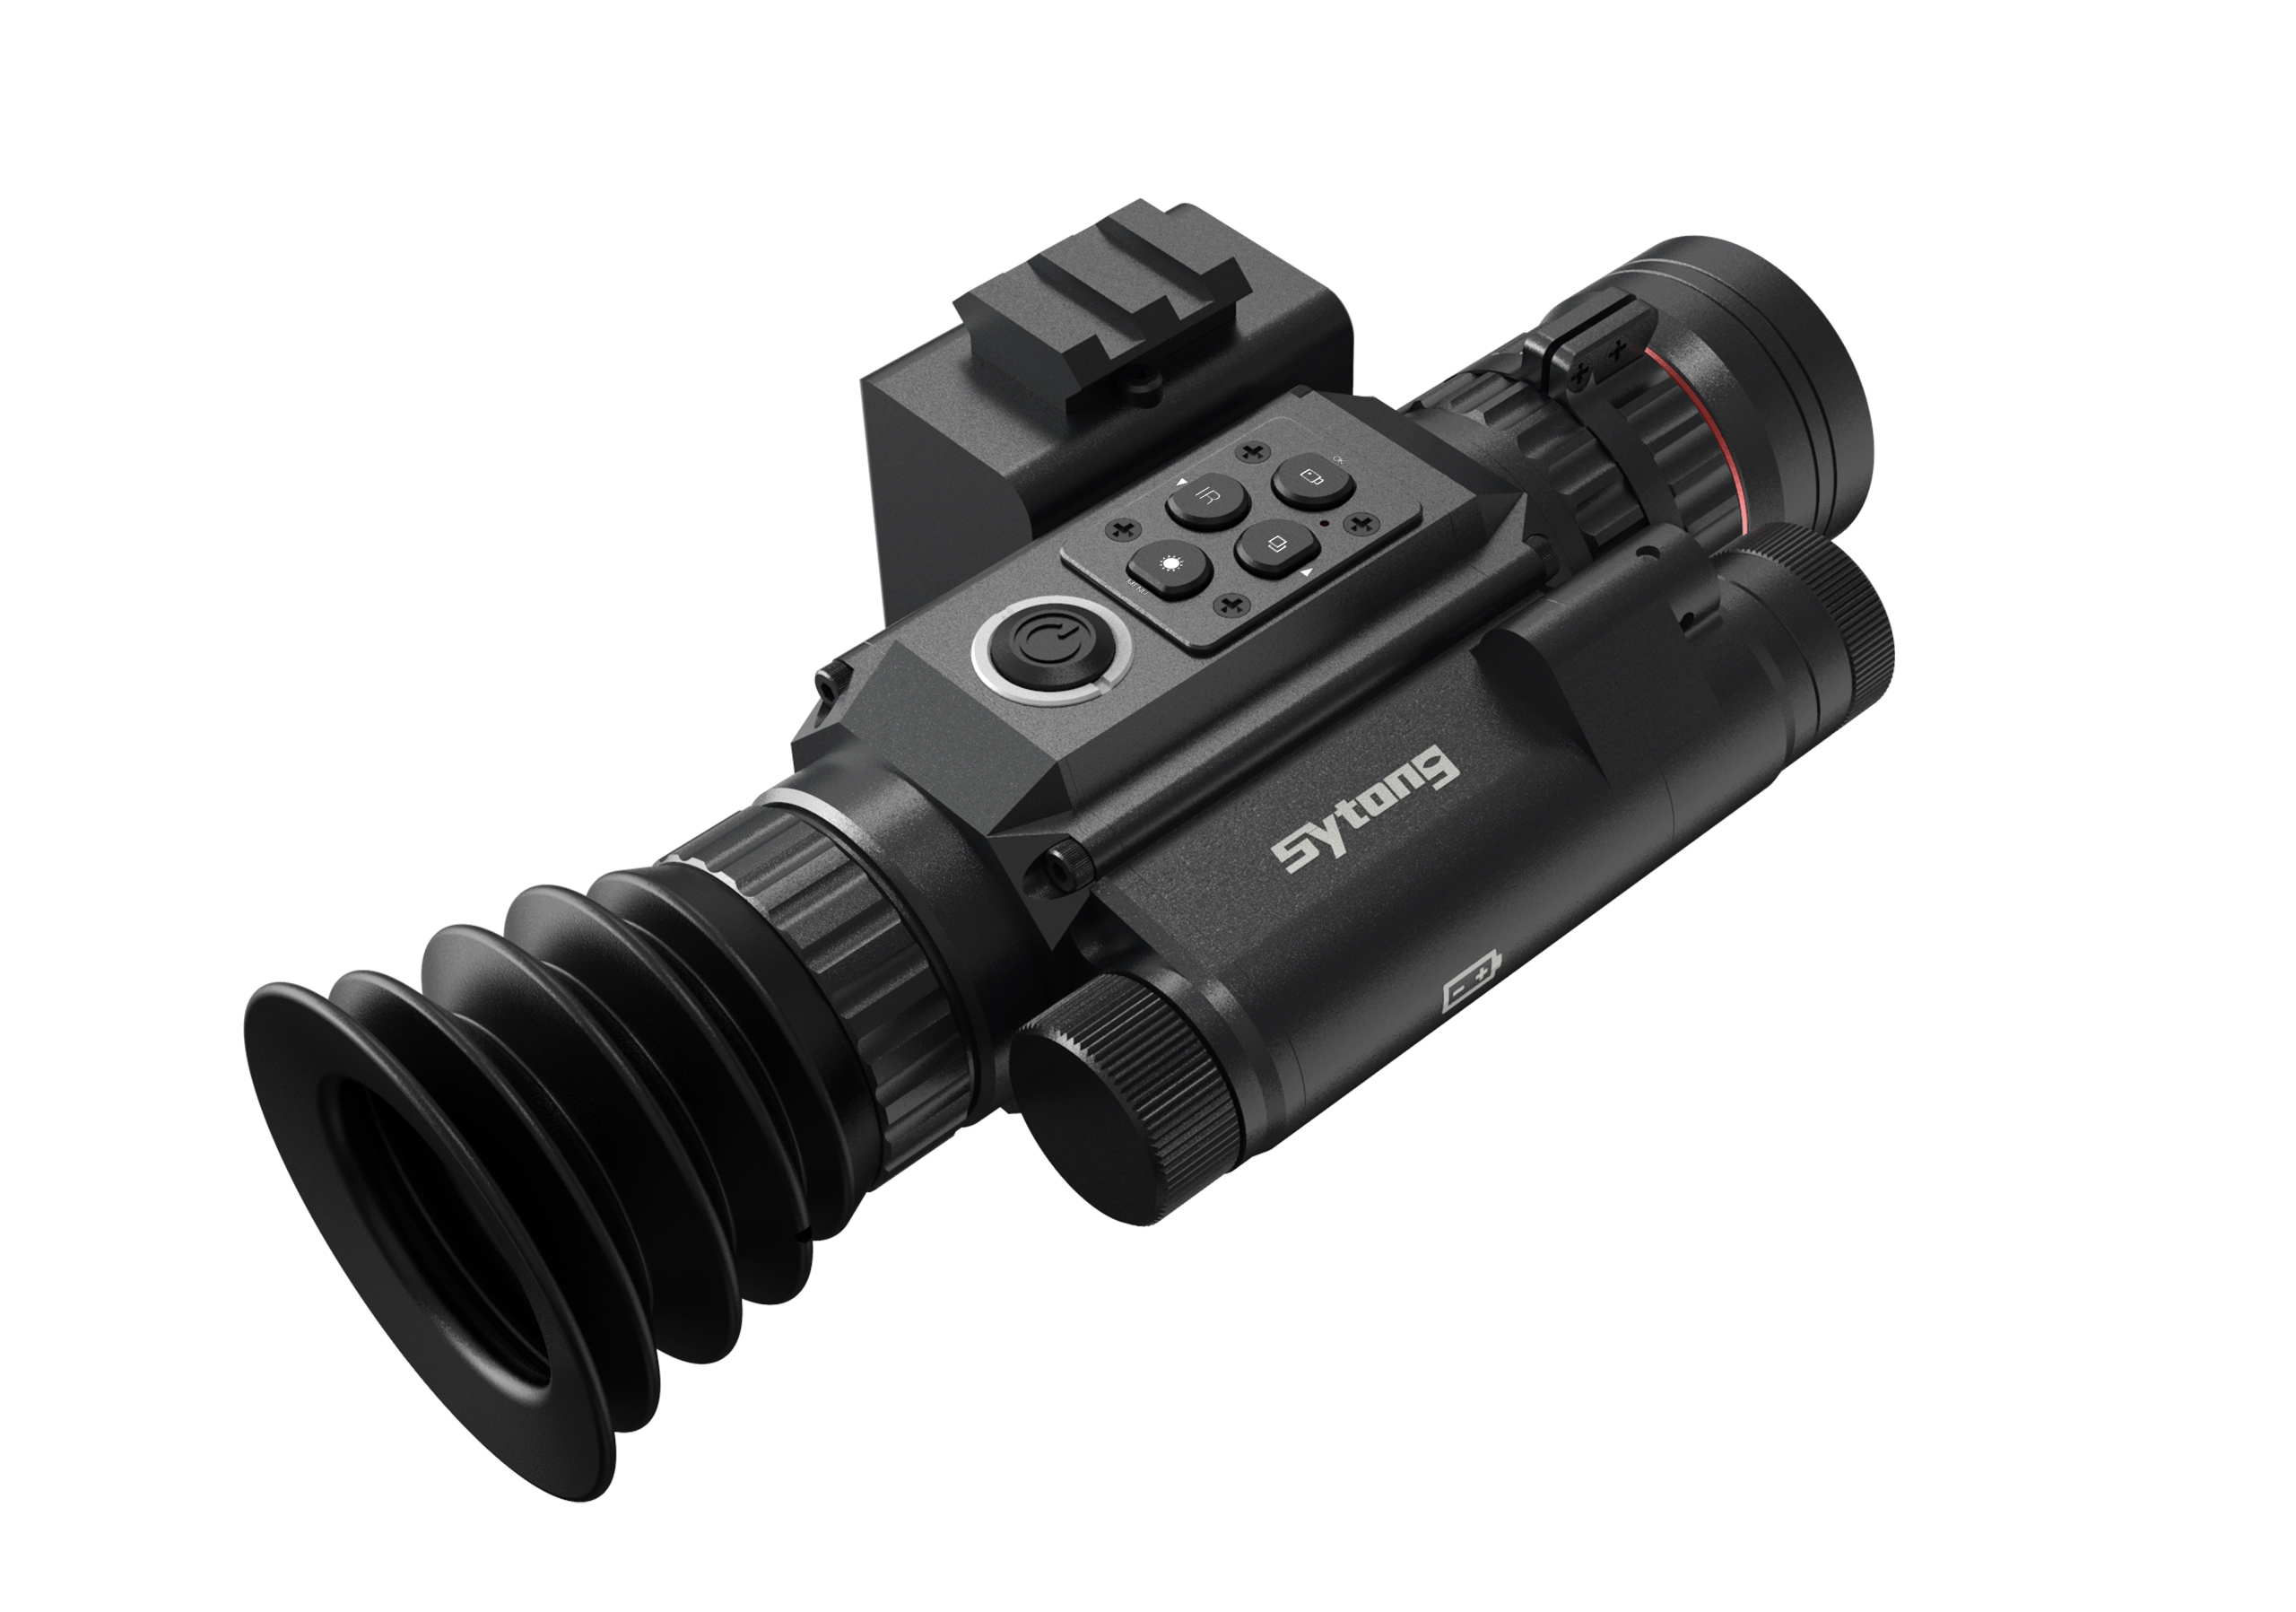 SYTONG Rifle Scope Day & Night HT-60 LRF